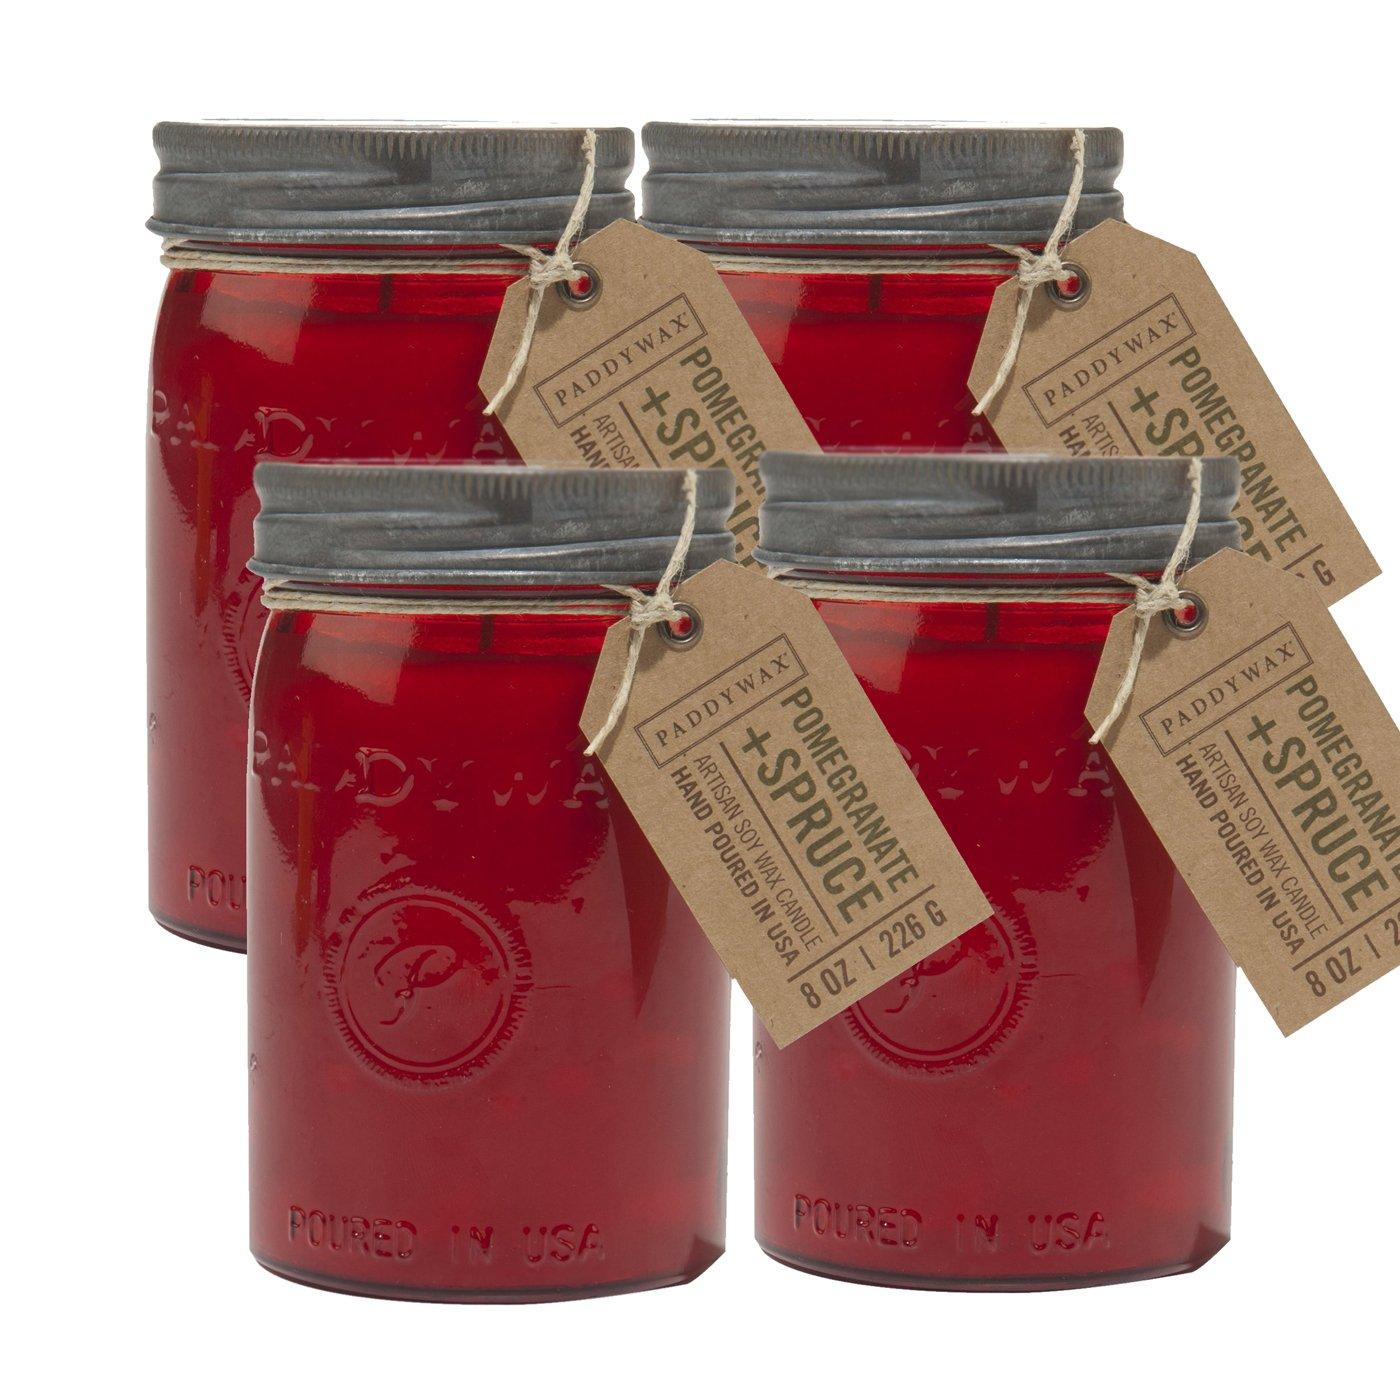 Paddywax Candles Relish Jar Collection Candle, 9.5-Ounce, Red Pomegranite & Spruce - Set of 4